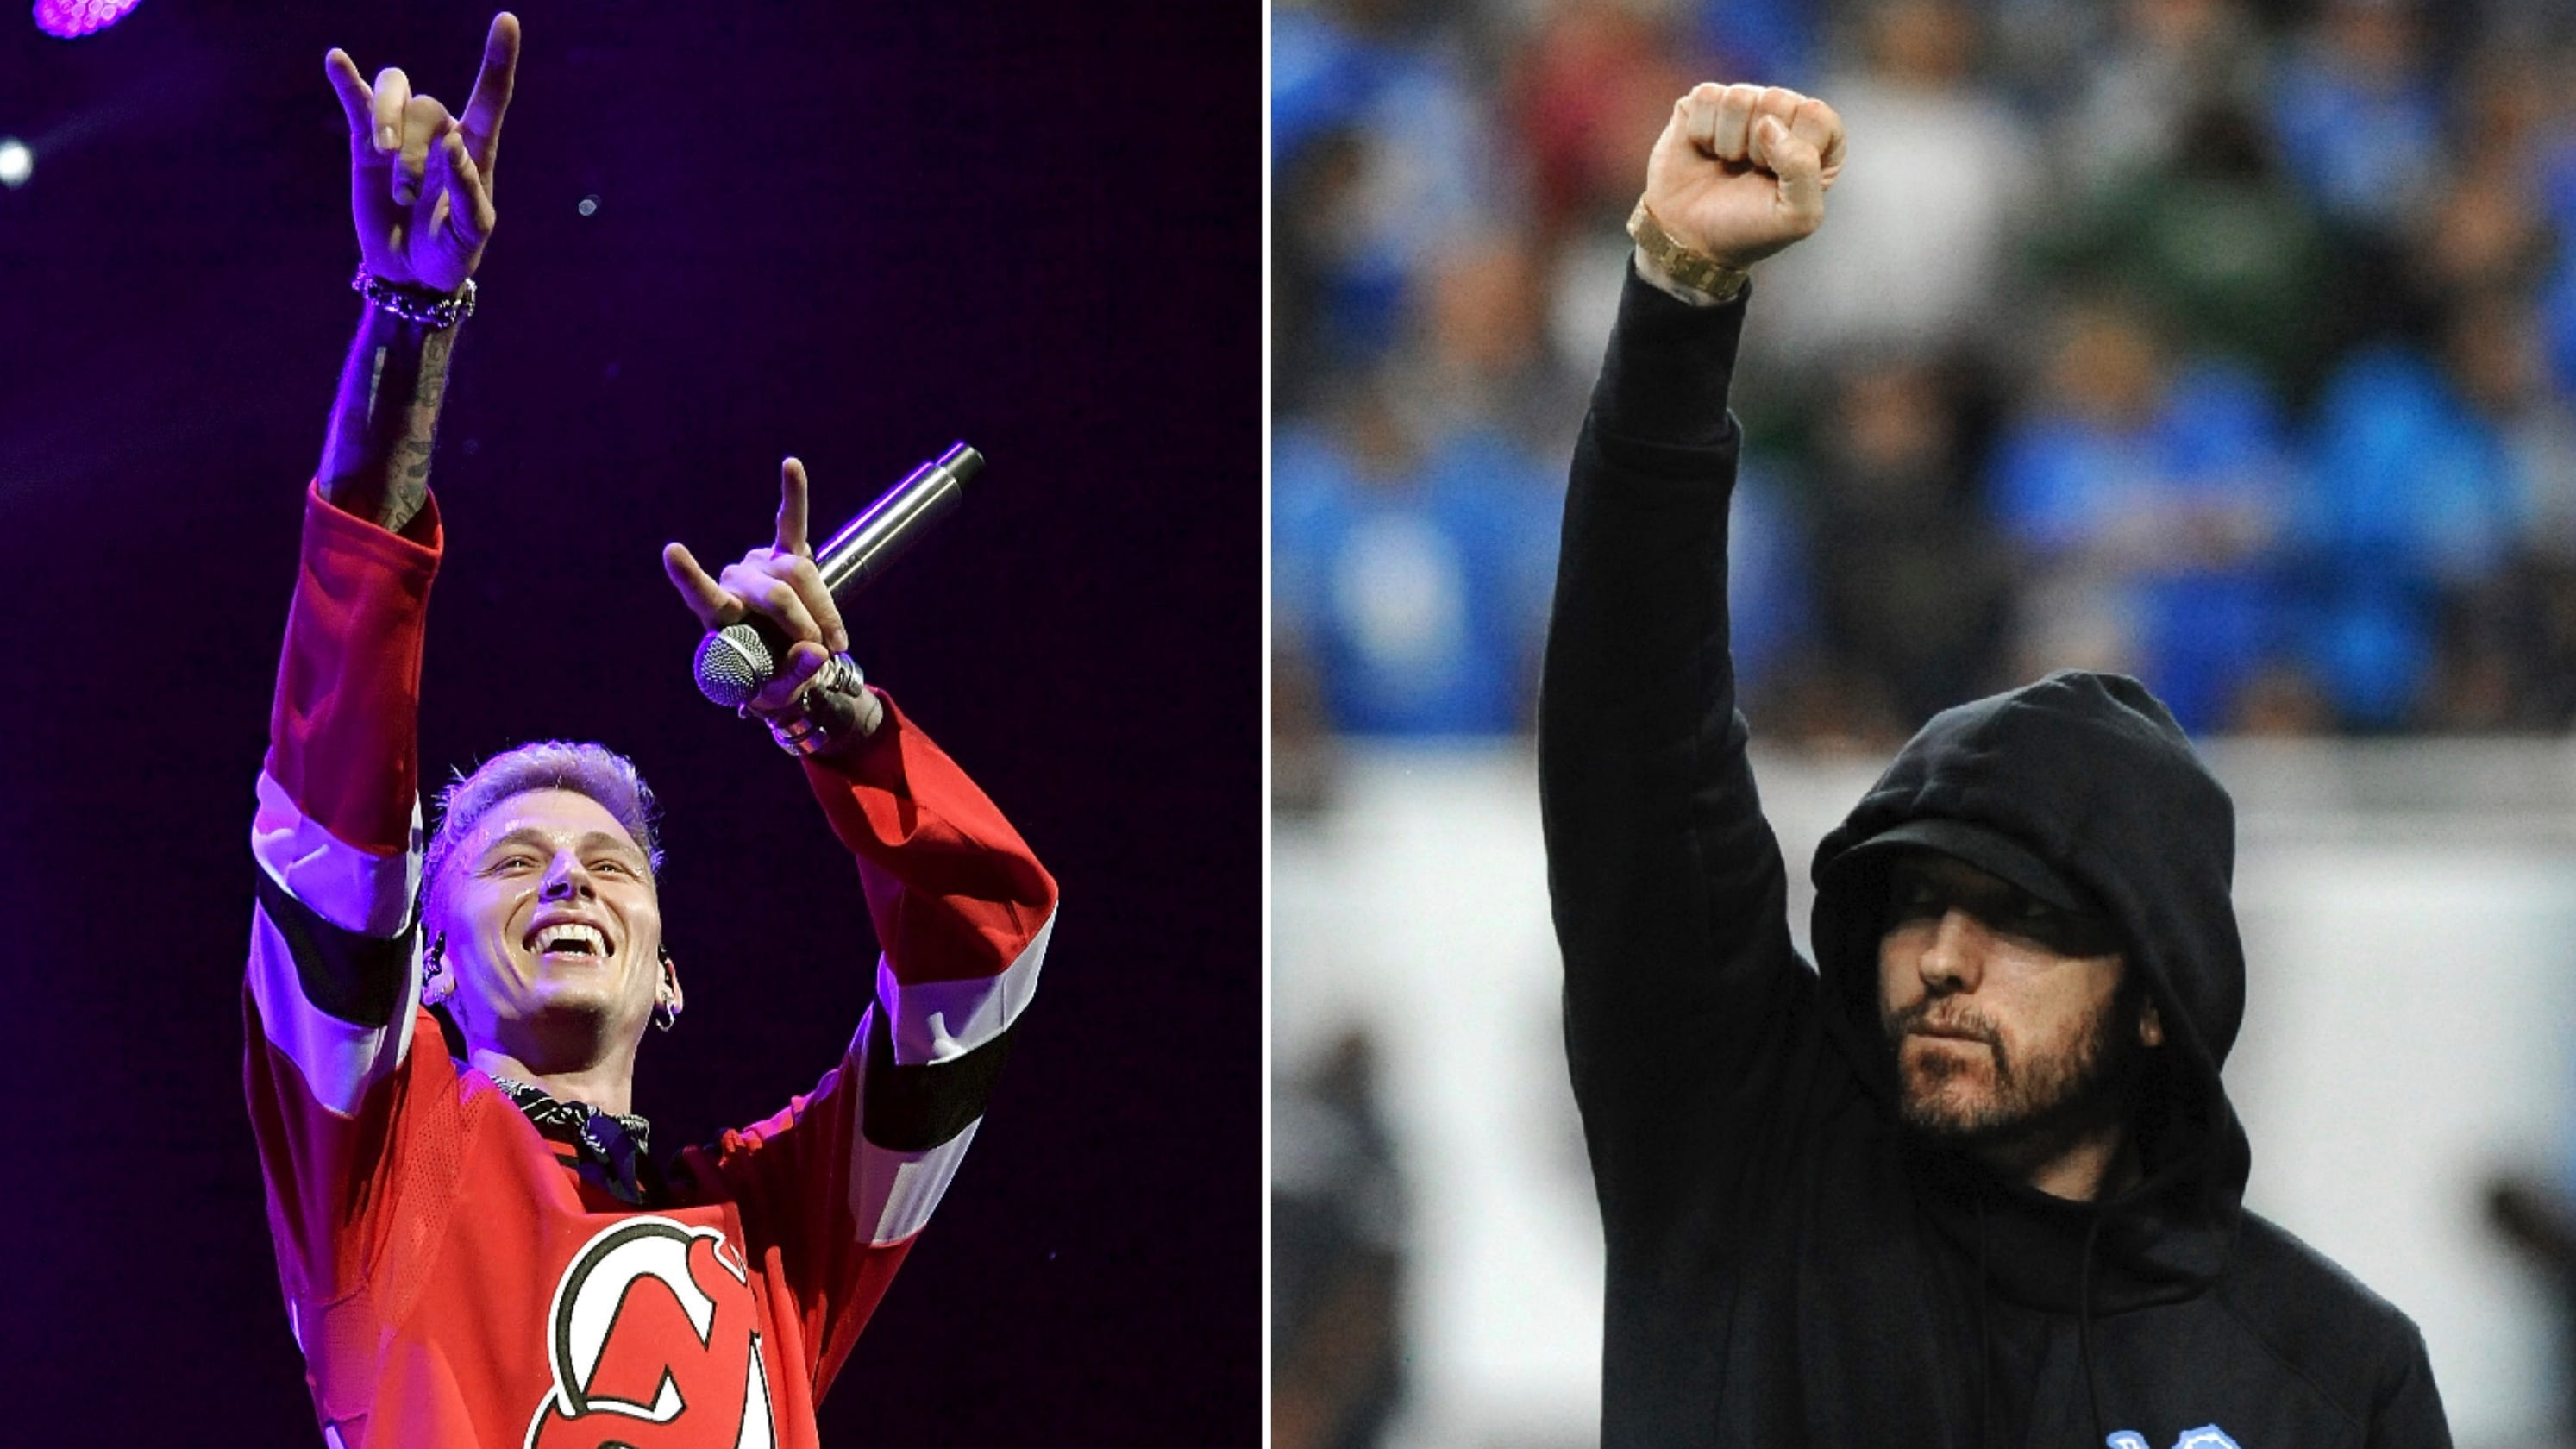 eminem makes youtube history while machine gun kelly gets booed